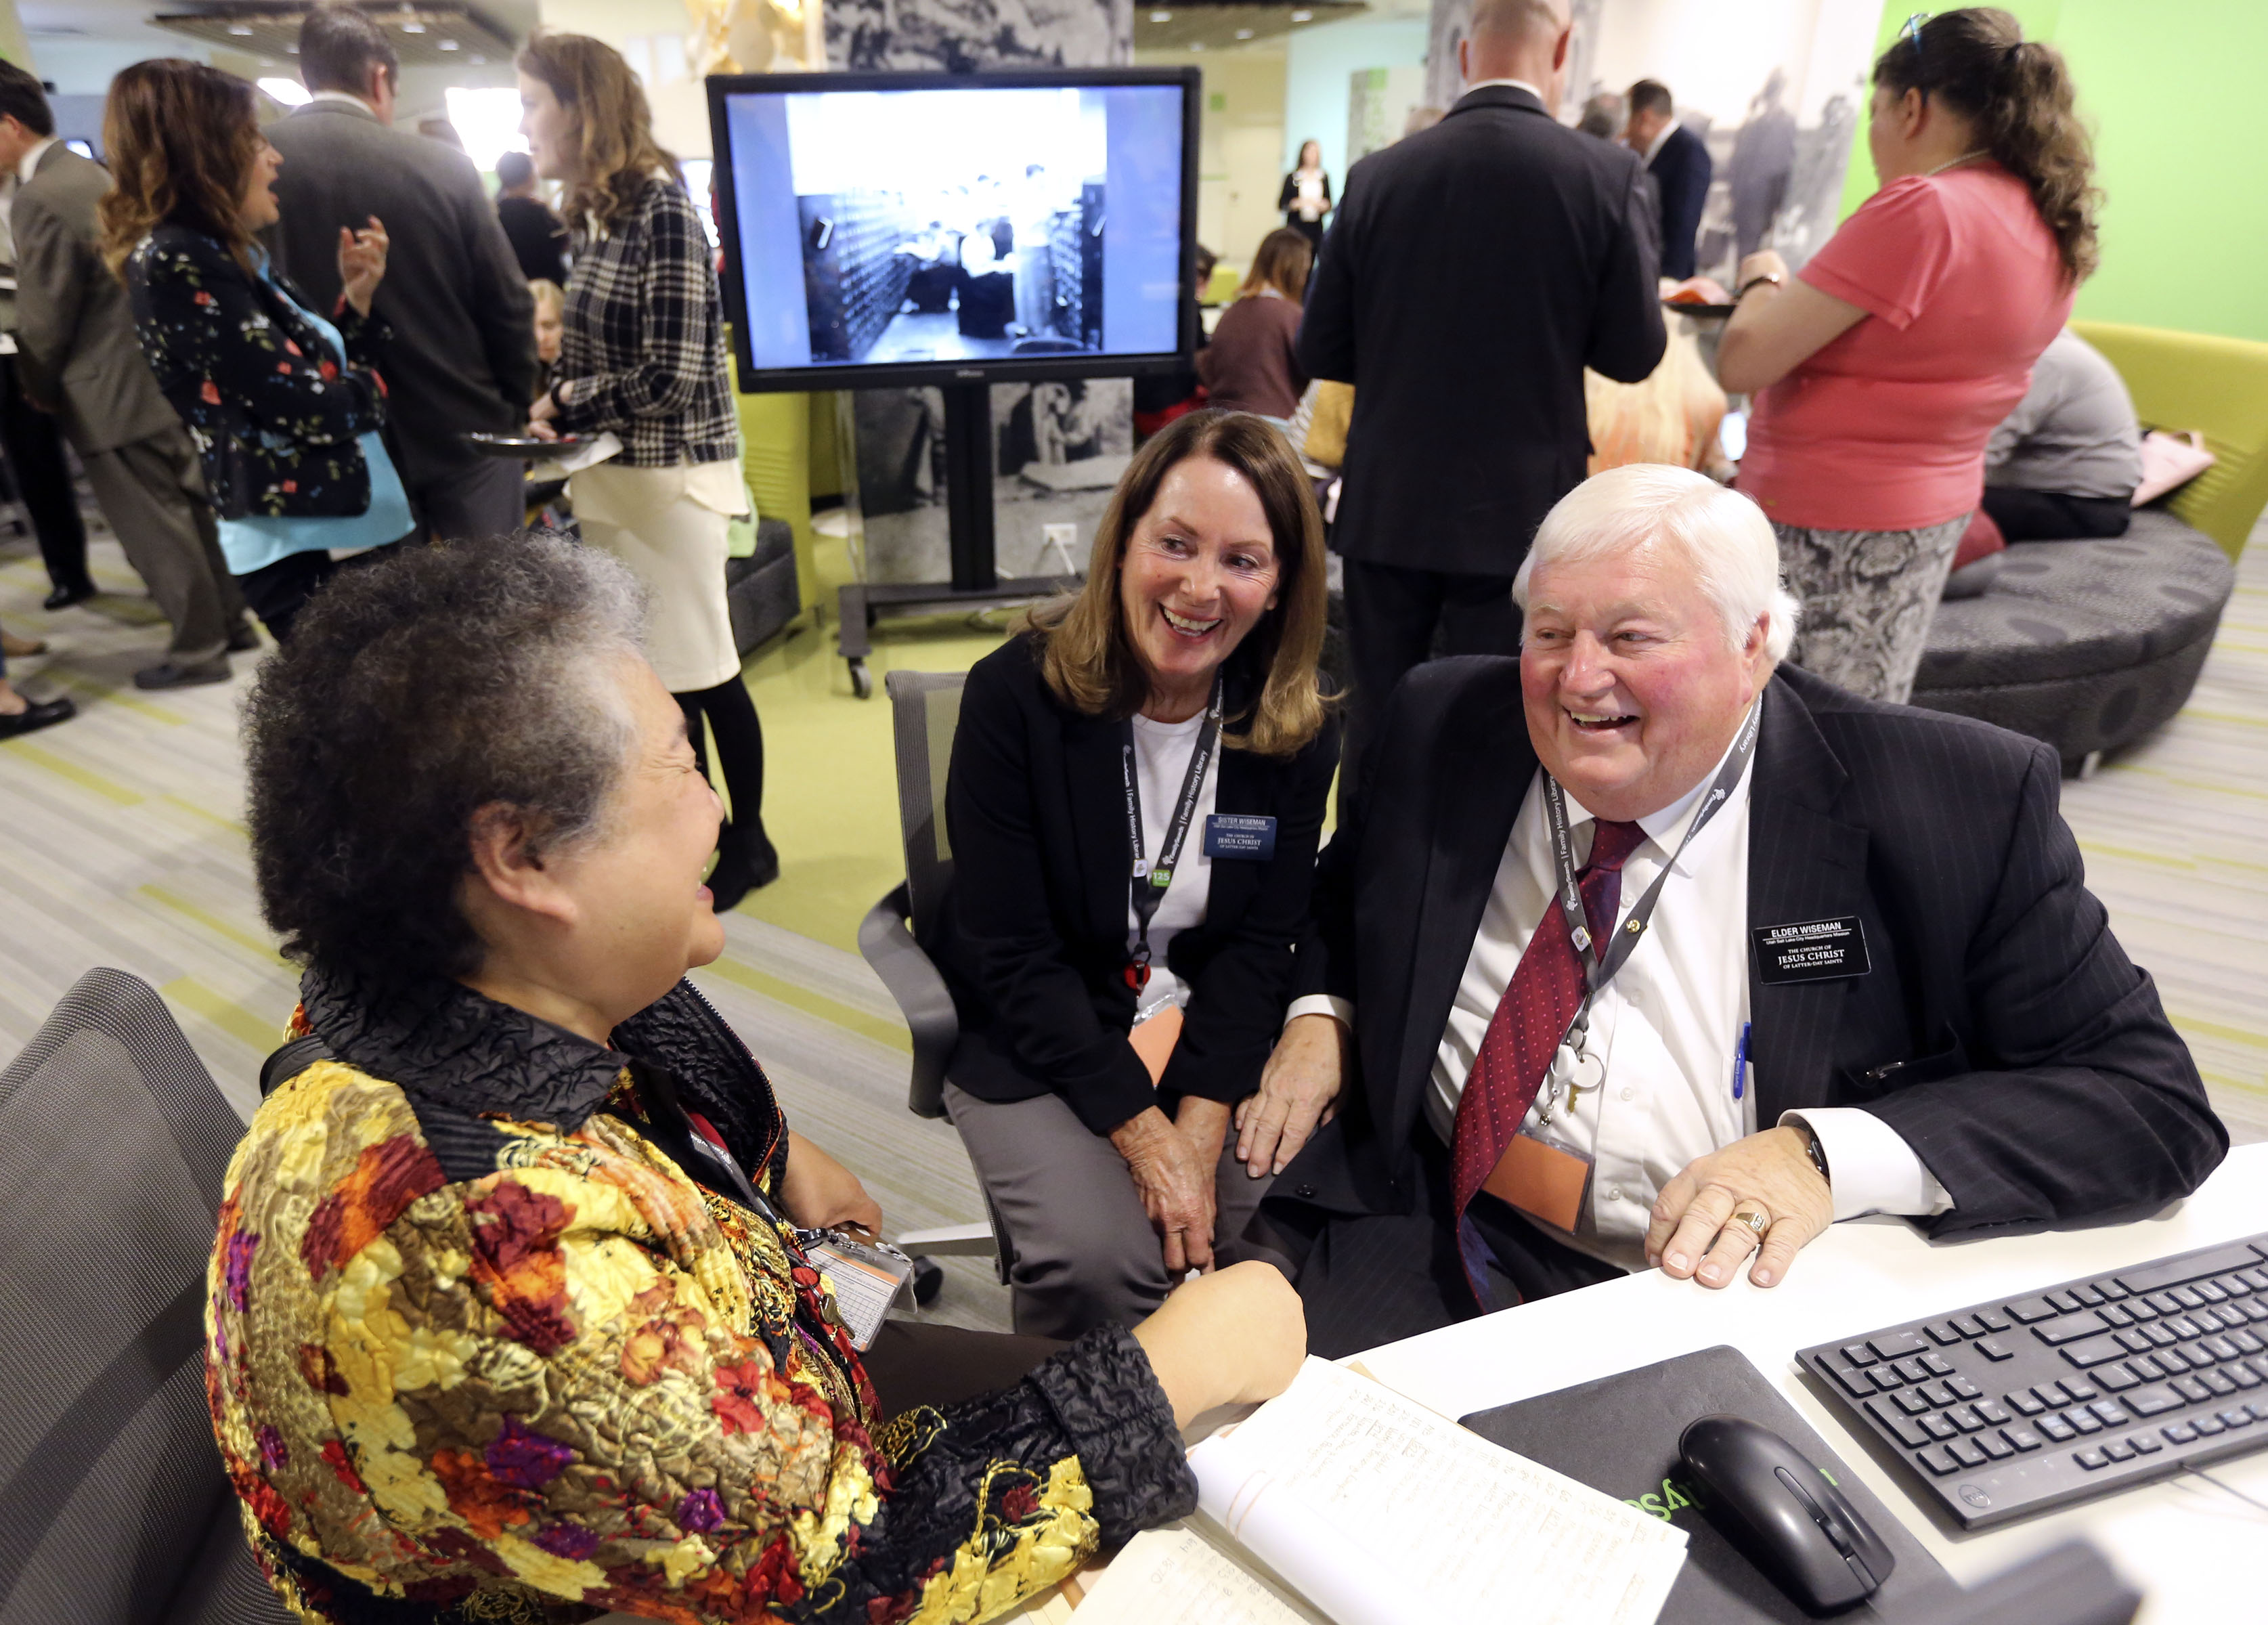 Sister Rosemary Pangan, Sister Diana Wiseman and Elder Steve Wiseman chat during the FamilySearch 125th anniversary celebration at the Family History Library in Salt Lake City on Wednesday, Nov. 13, 2019.